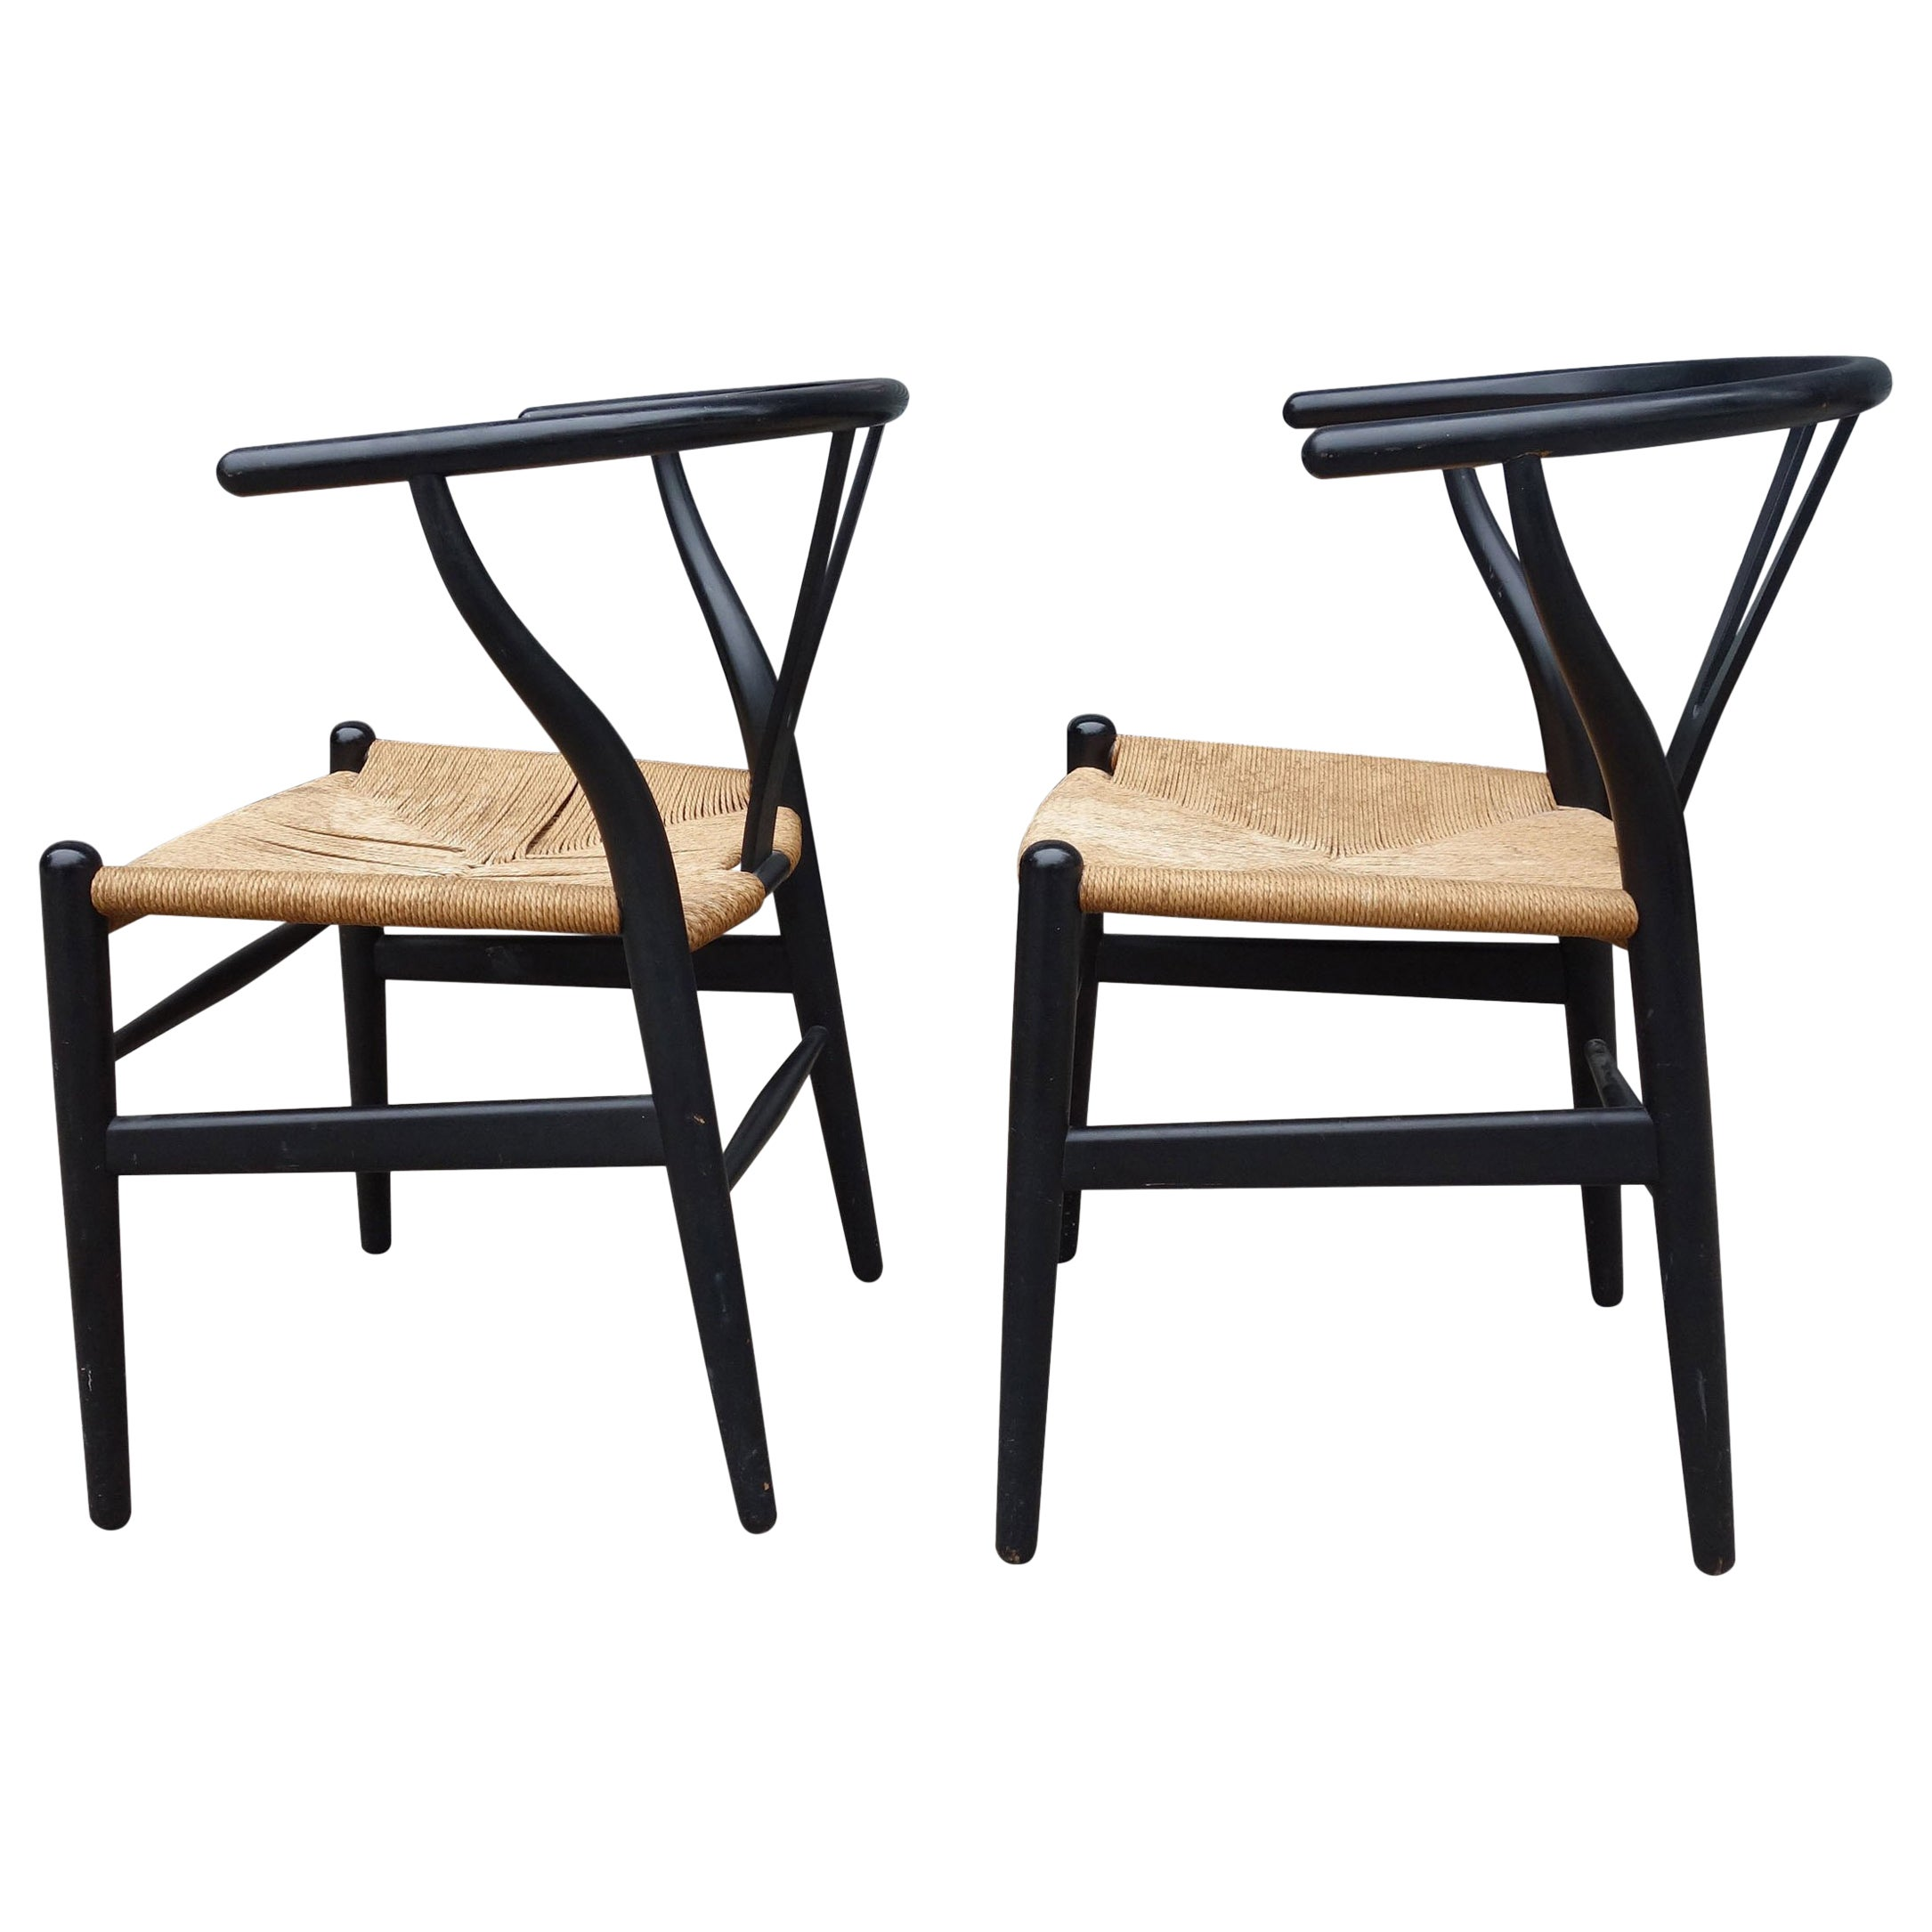 Wishbone Chairs Midcentury Hans Wegner Wishbone Chairs